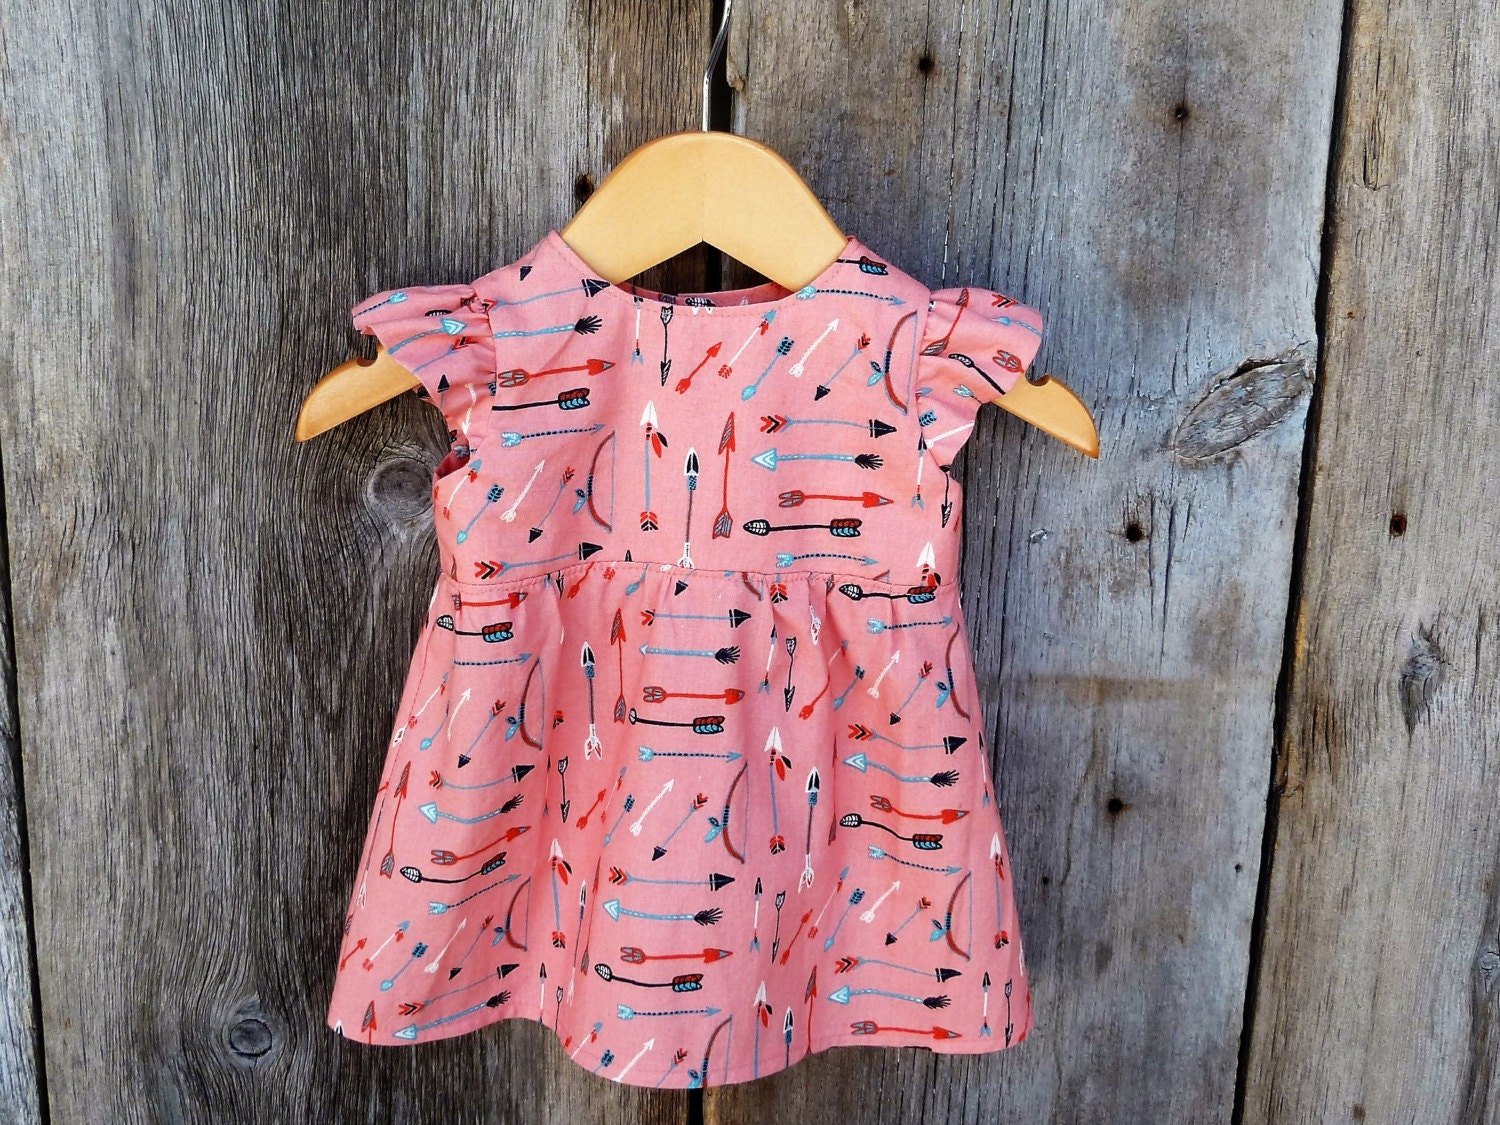 Organic & Natural Baby Gowns at Organically Baby where you will find the largest selection of Organic Baby Products anywhere.